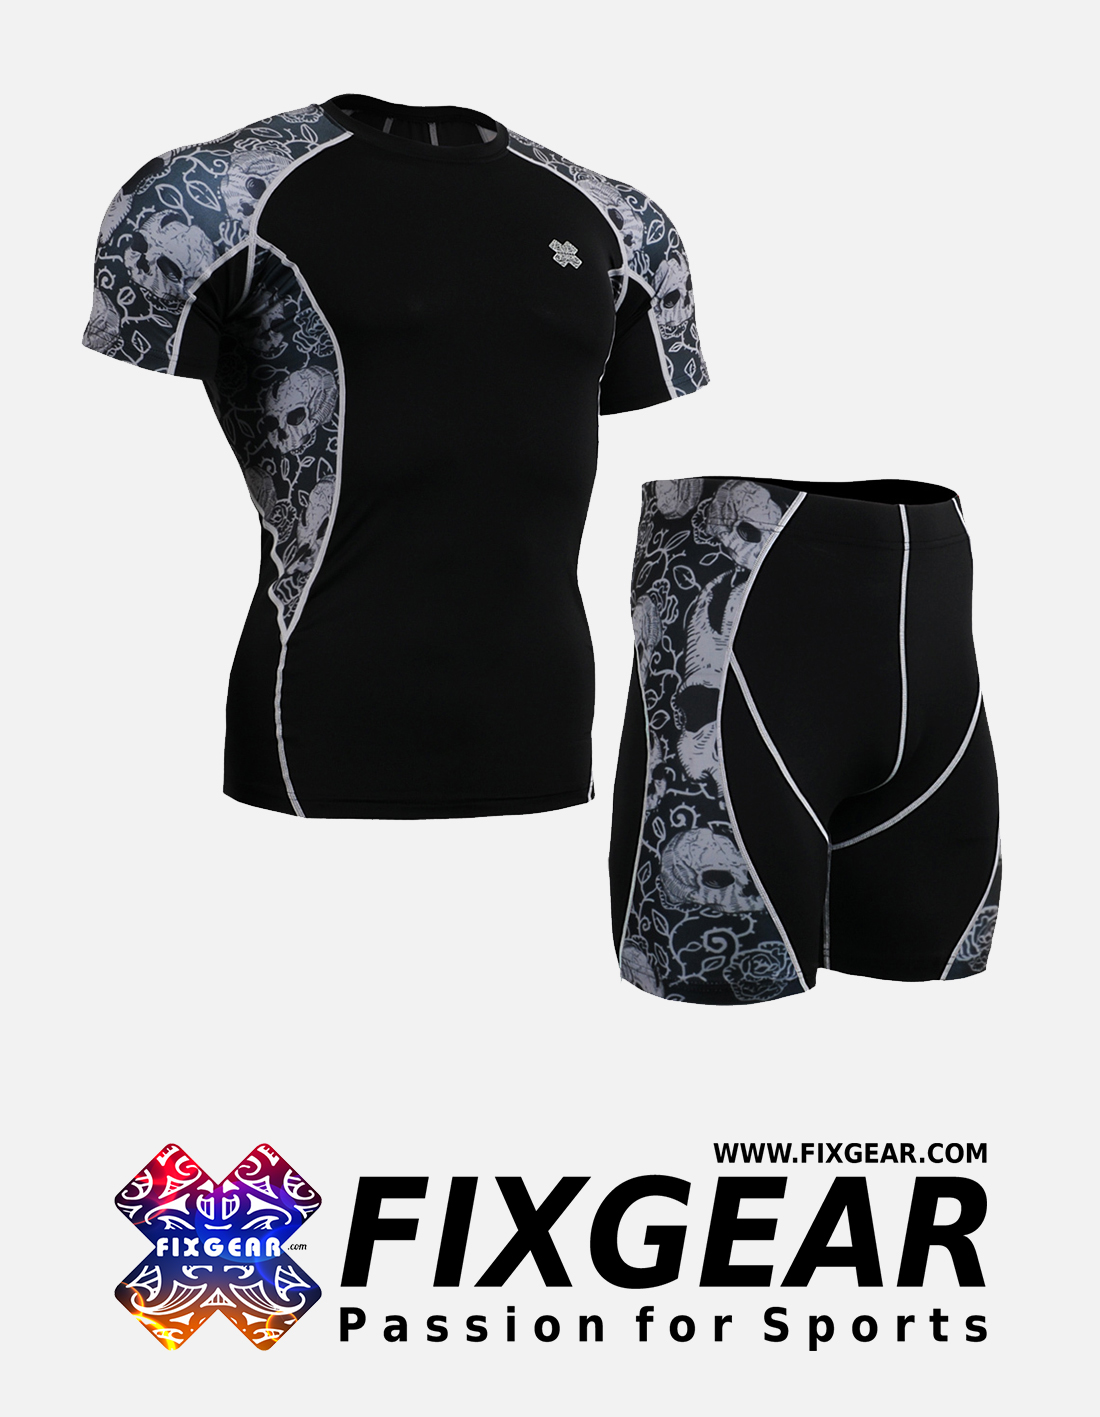 FIXGEAR C2S-P2S-B40 Set Compression Base Layer Shirt & Compression Drawer Shorts